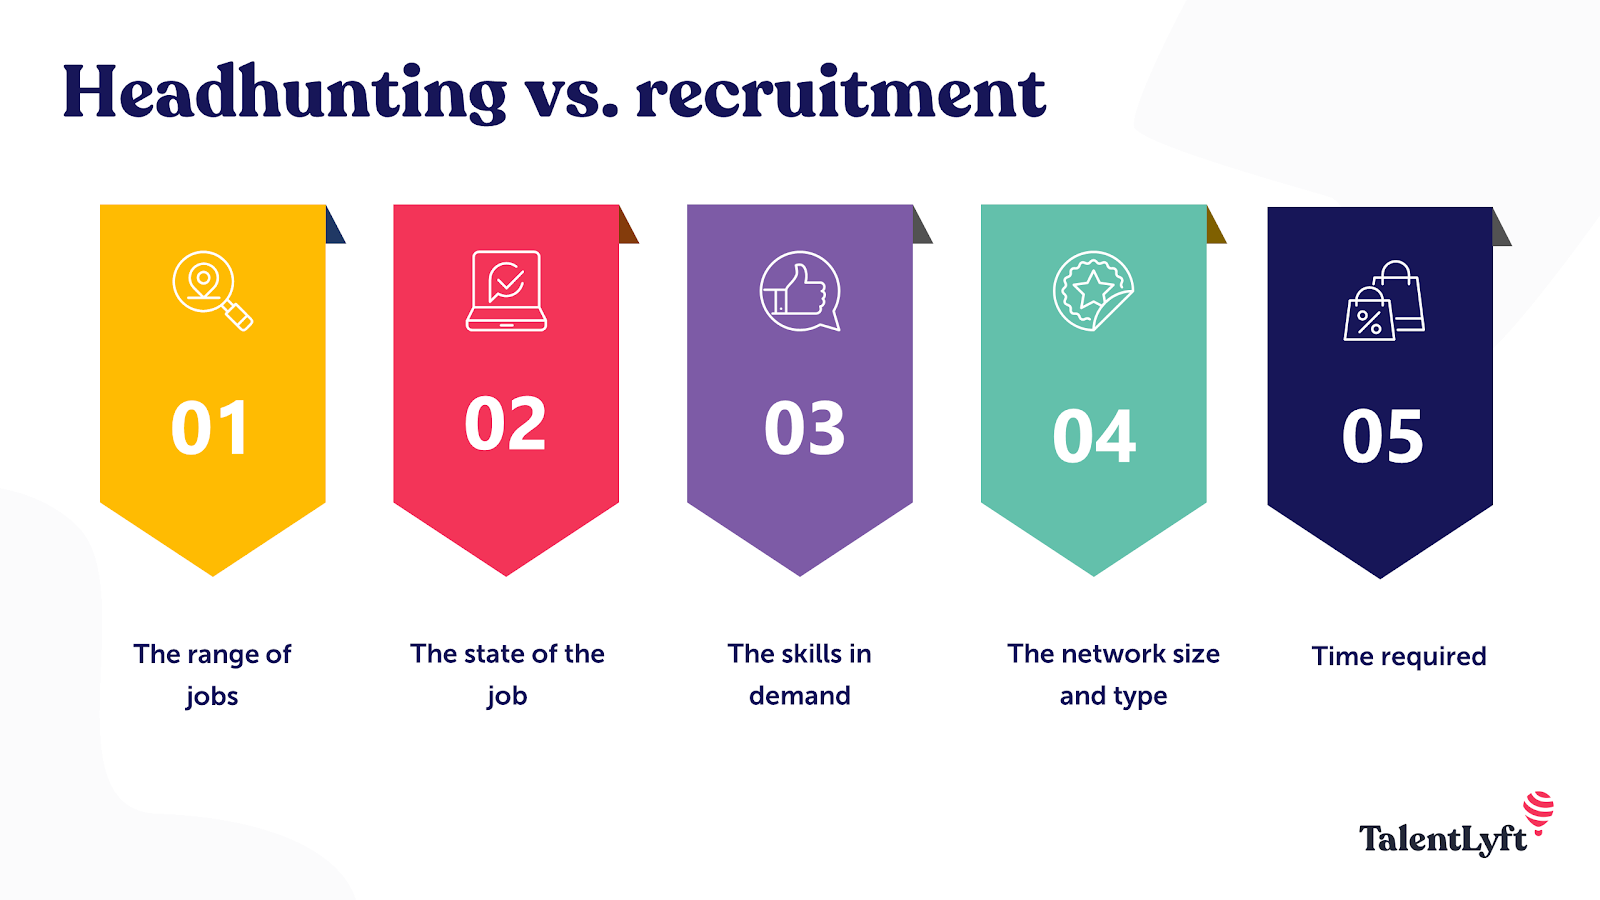 Headhunting and recruiting